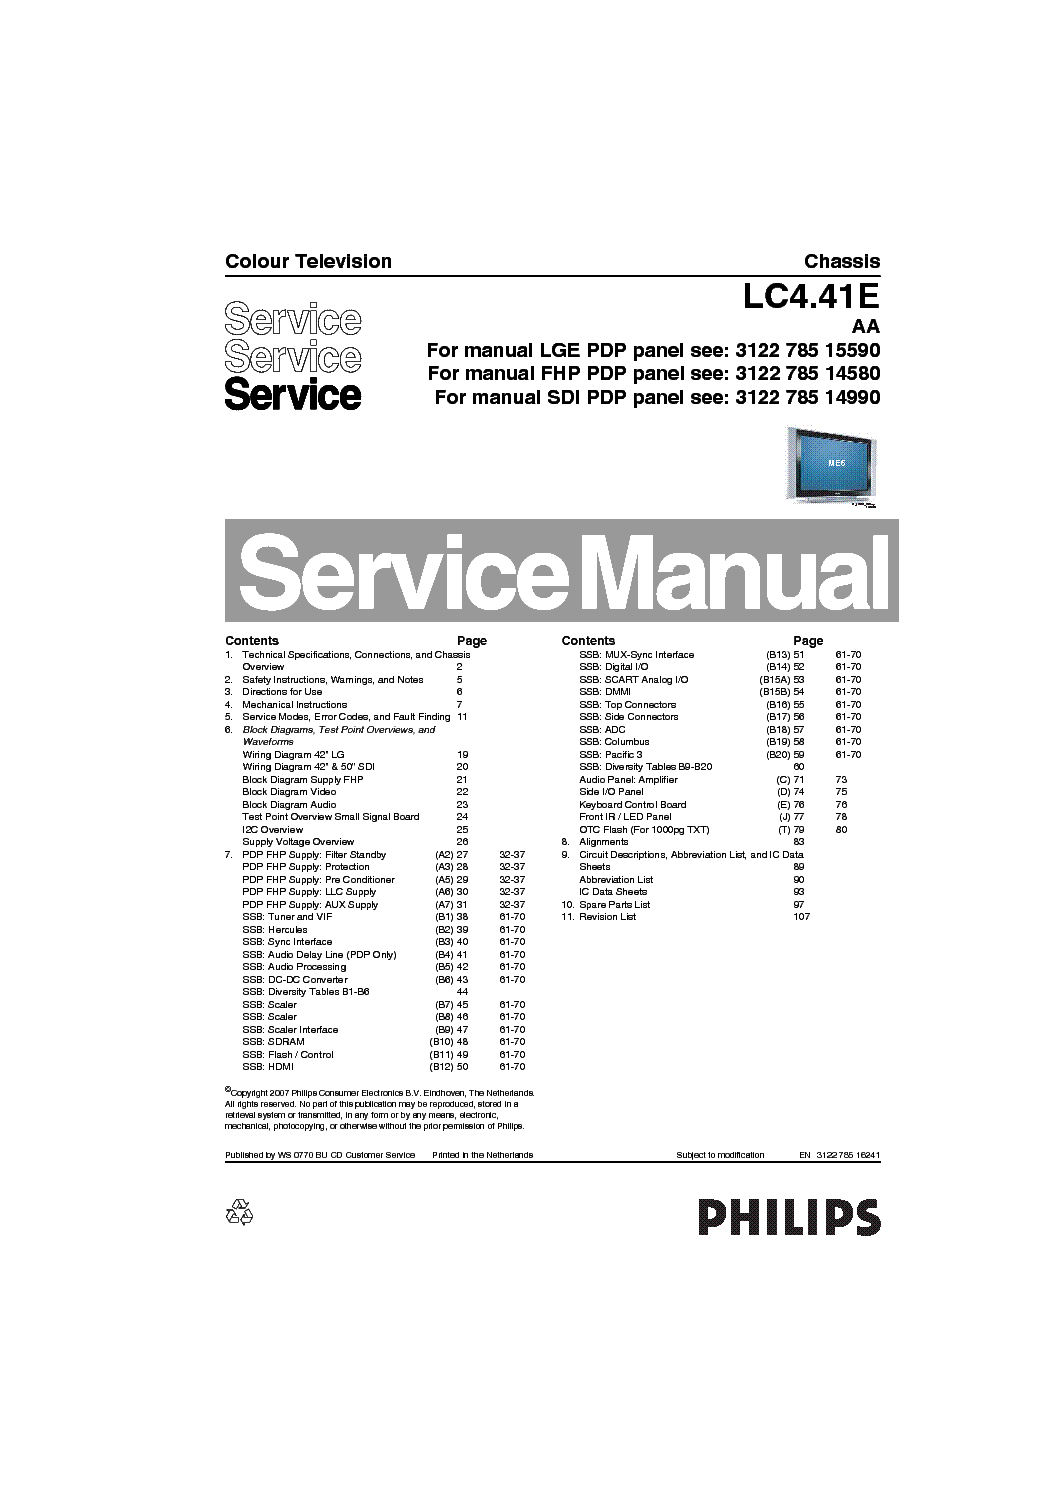 PHILIPS CHASSIS LC4.41E-AA SM service manual (1st page)